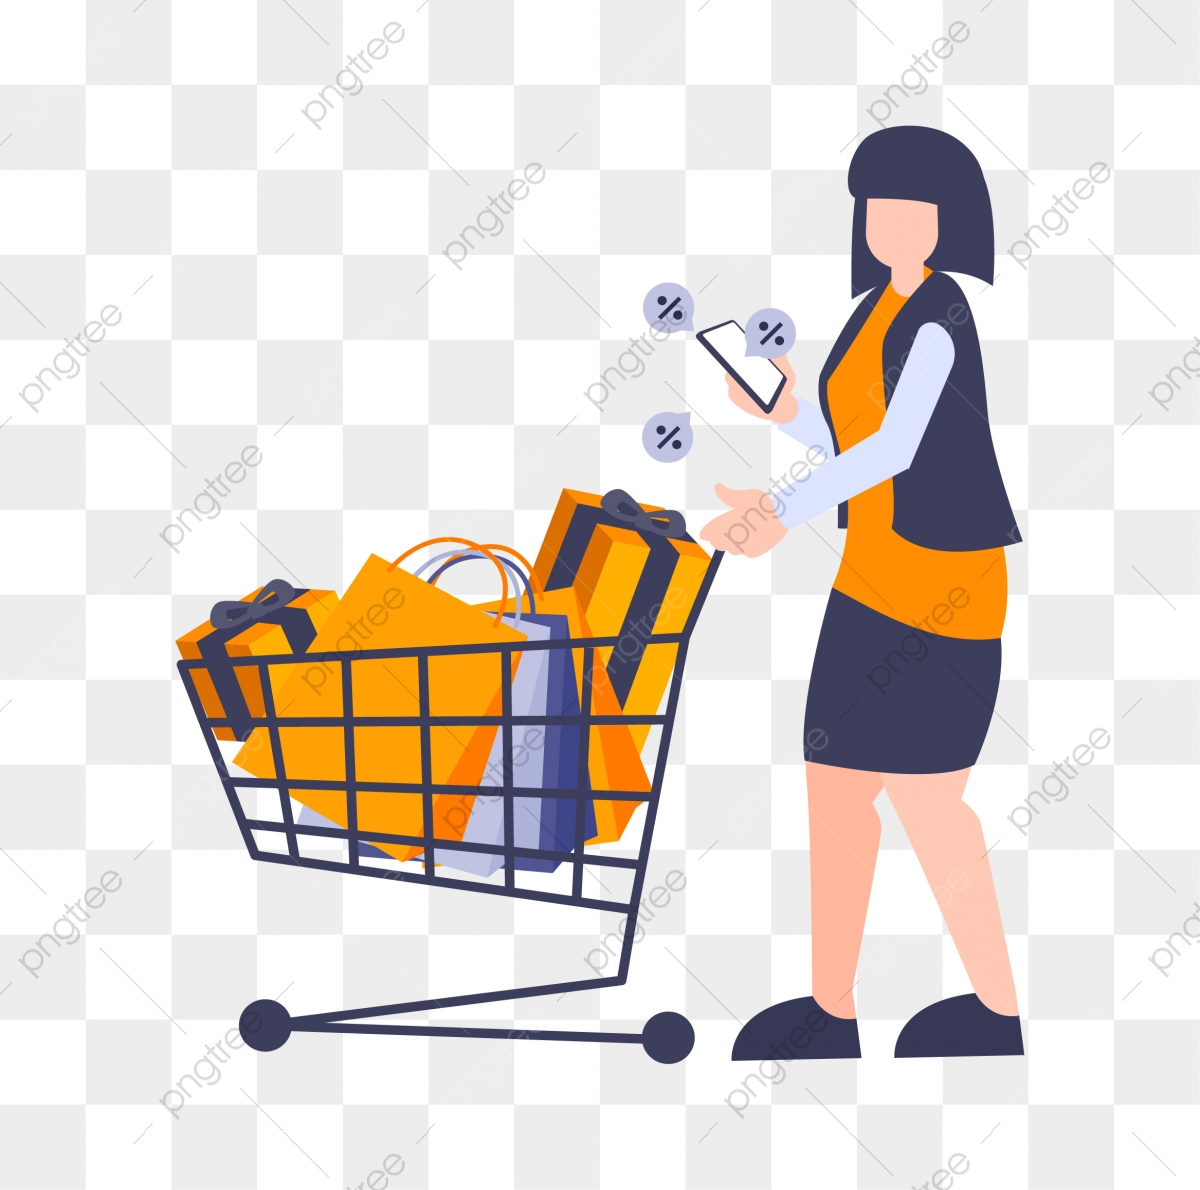 Flat Cartoon Illustration Woman With Shopping Trolley And Smartphone Bag Buy Online Png And Vector With Transparent Background For Free Download